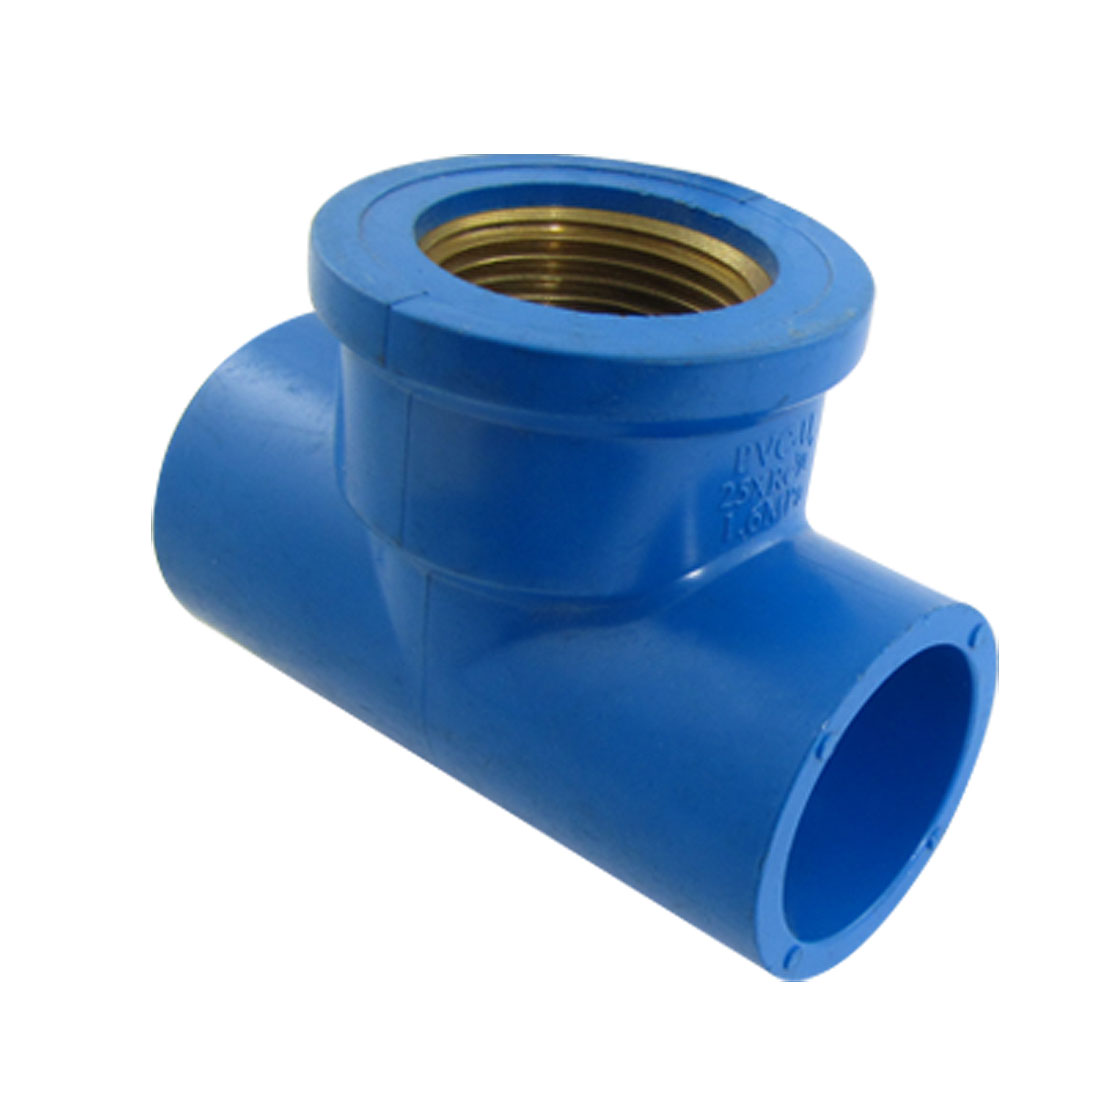 25mm Female Thread 3 Way T Connector Water Splitter PVC Pipe Fitting